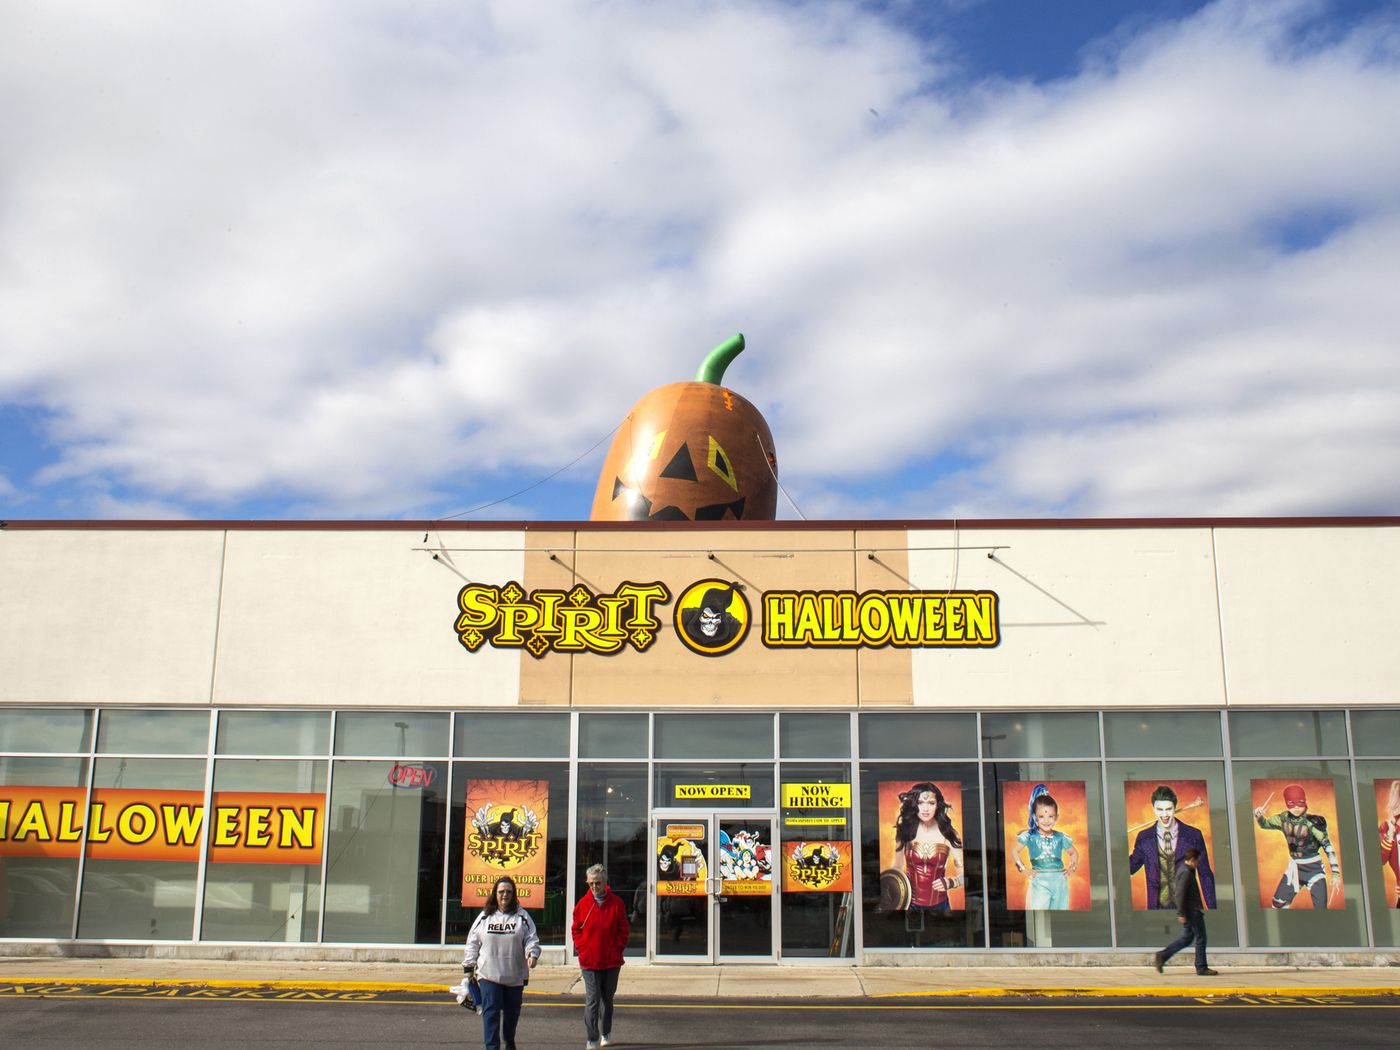 Halloween Costume Stores.Spirit Halloween And Party City S Pop Up Business Model Explained Vox